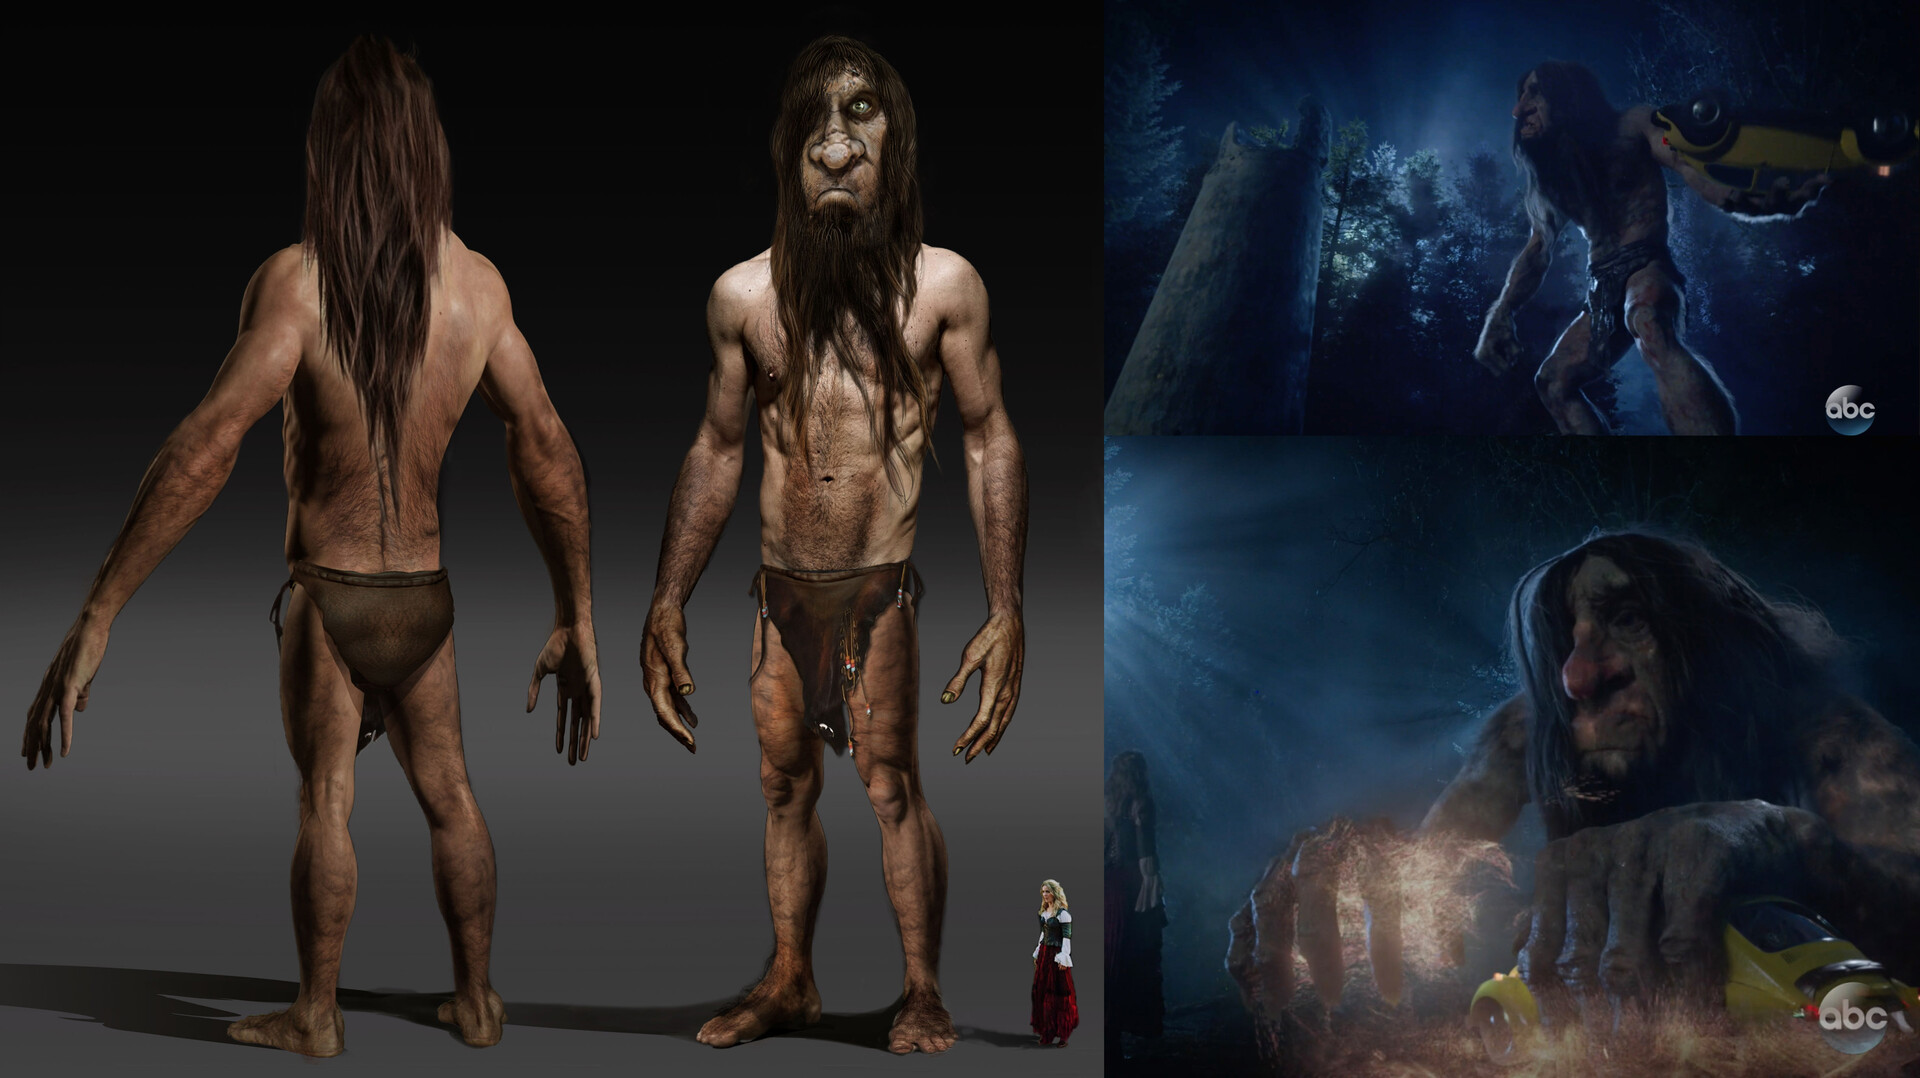 Troll Creature that was based on existing concrete Bridge Troll we built practically out of foam and which comes to life in Virtual Reality / Once Upon a Time Season 7